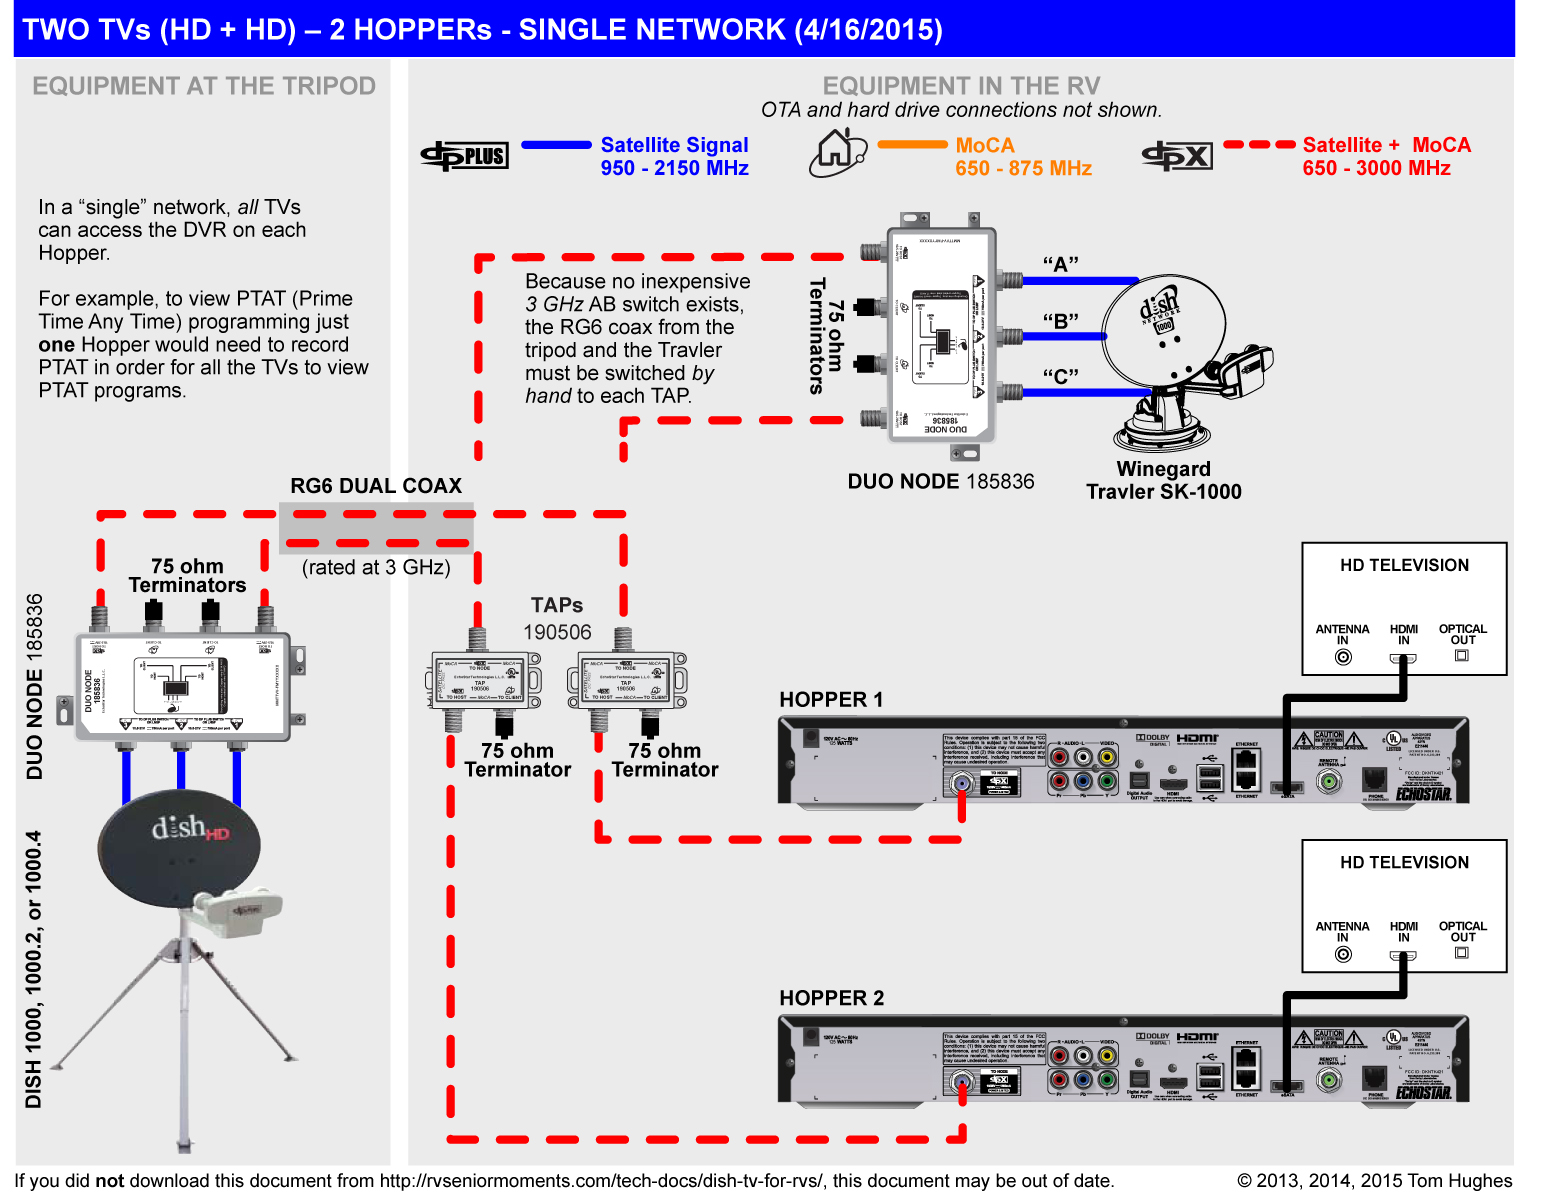 210_dish_twotvs_two_hoppers_single_network_hdhd720dpi directv whole home dvr wiring diagram directv free wiring dvd wiring diagram 2011 honda accord at nearapp.co